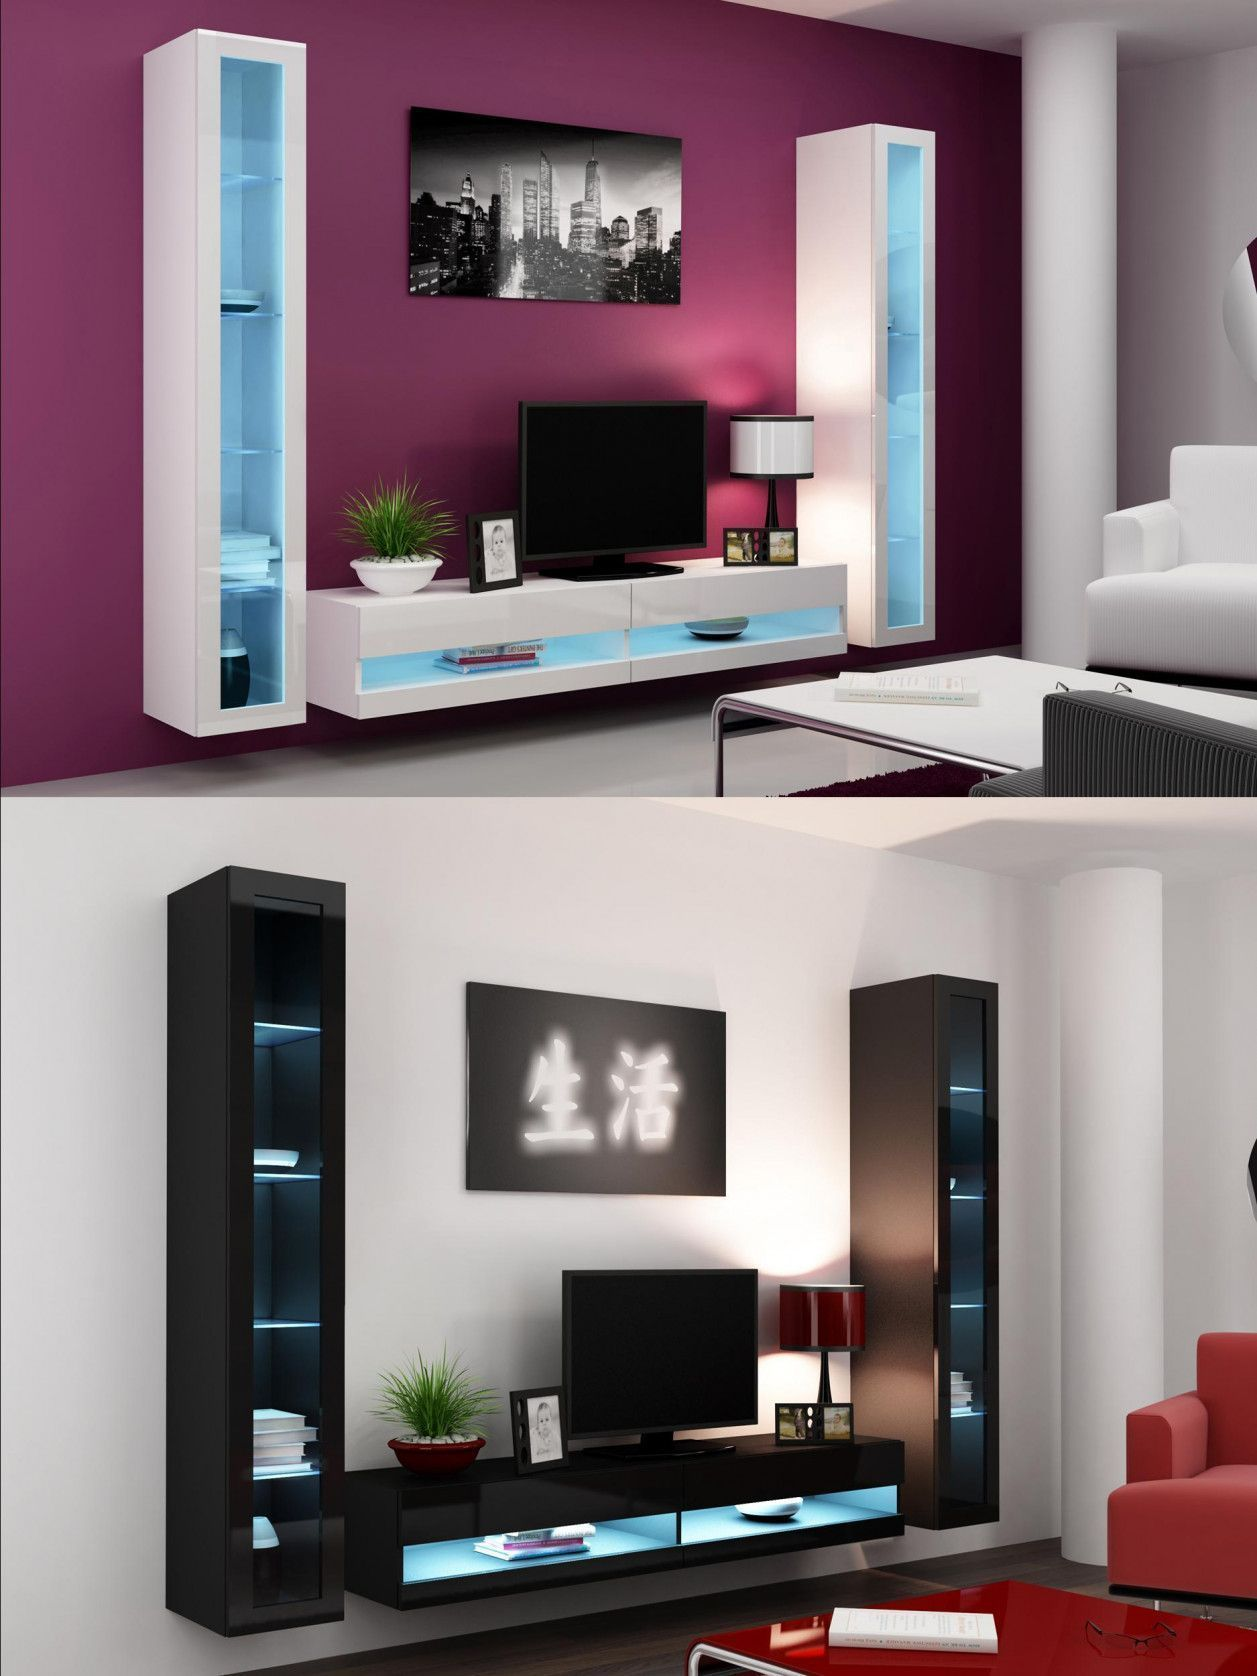 2019 Wall Mounted Tv Cabinet Kitchen Cabinets Update Ideas